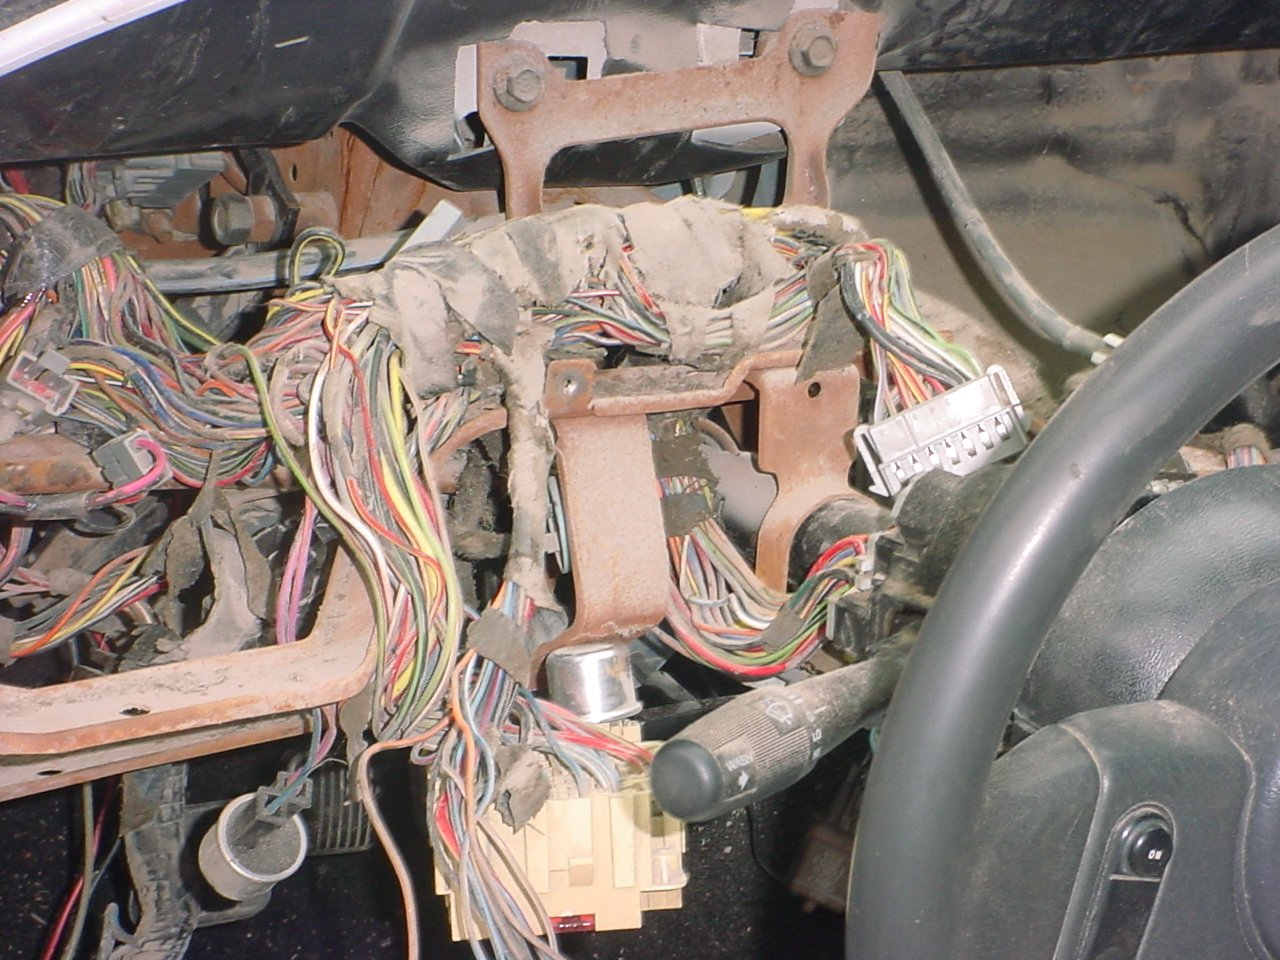 12808d1134269196 underdash wiring diagram dsc01663 underdash wiring diagram ford mustang forum fox body wiring harness diagram at edmiracle.co